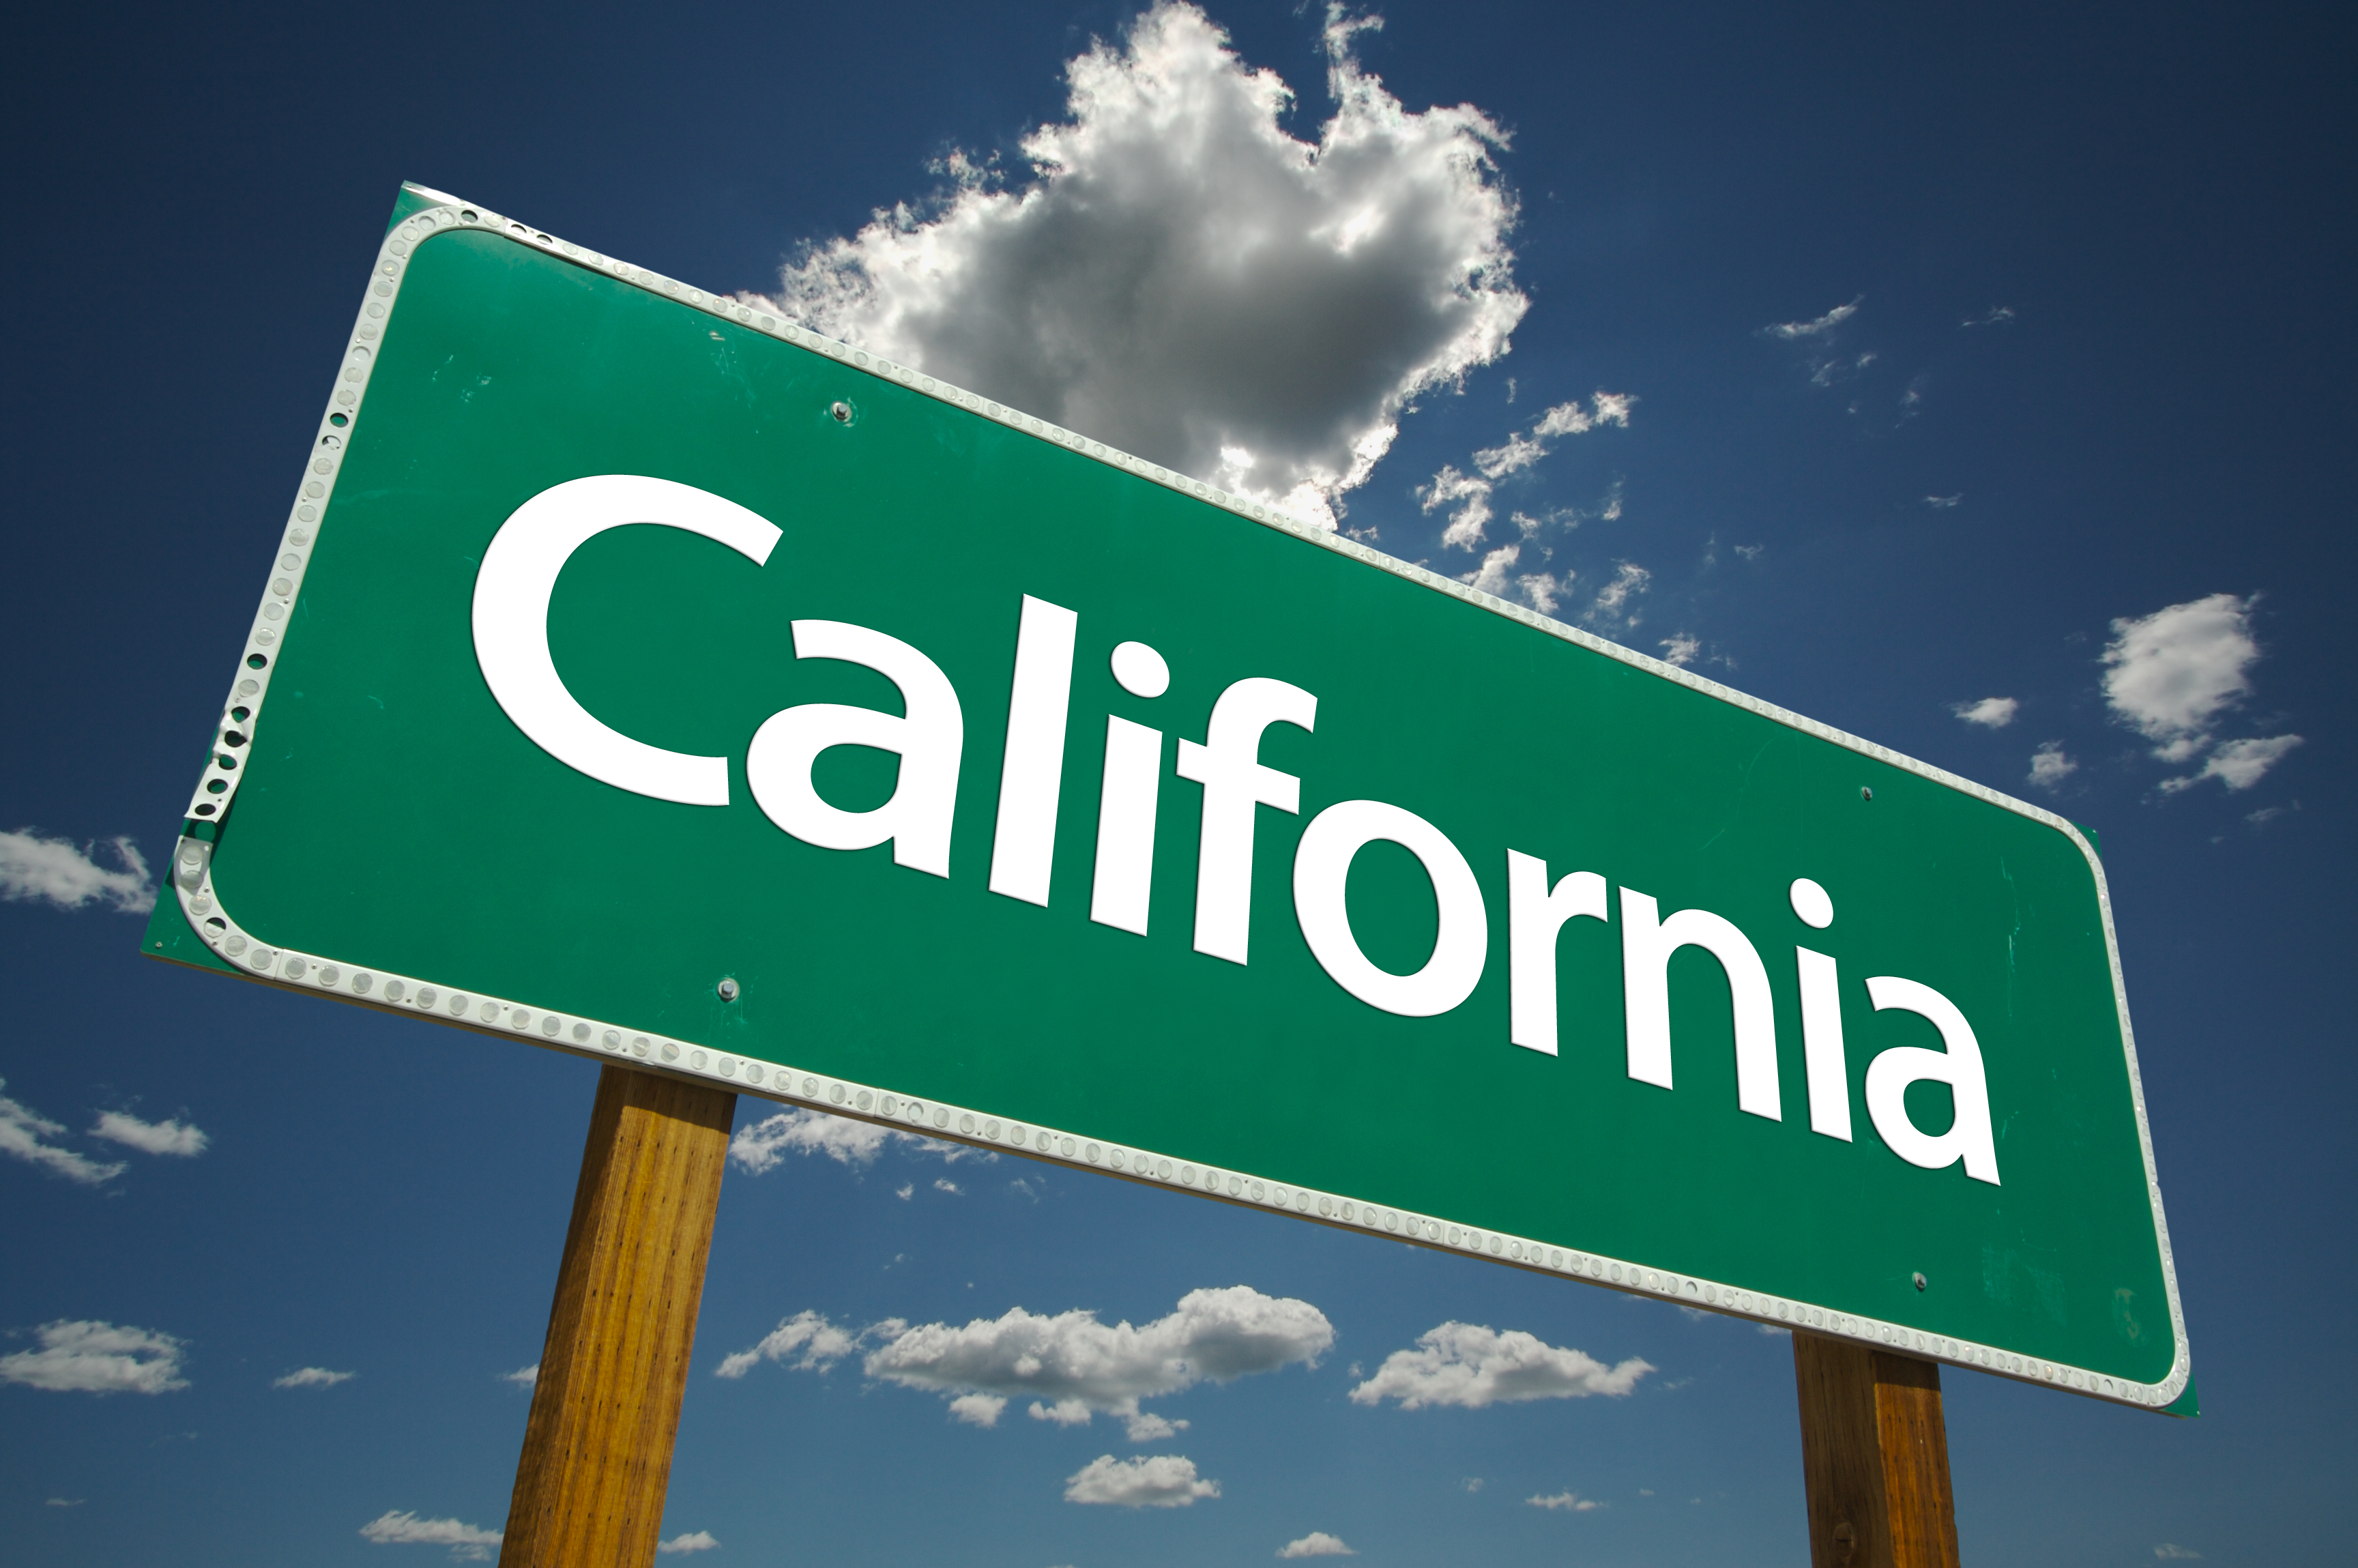 California Bar Likely To Get Higher Lawyer Fee Approved, But